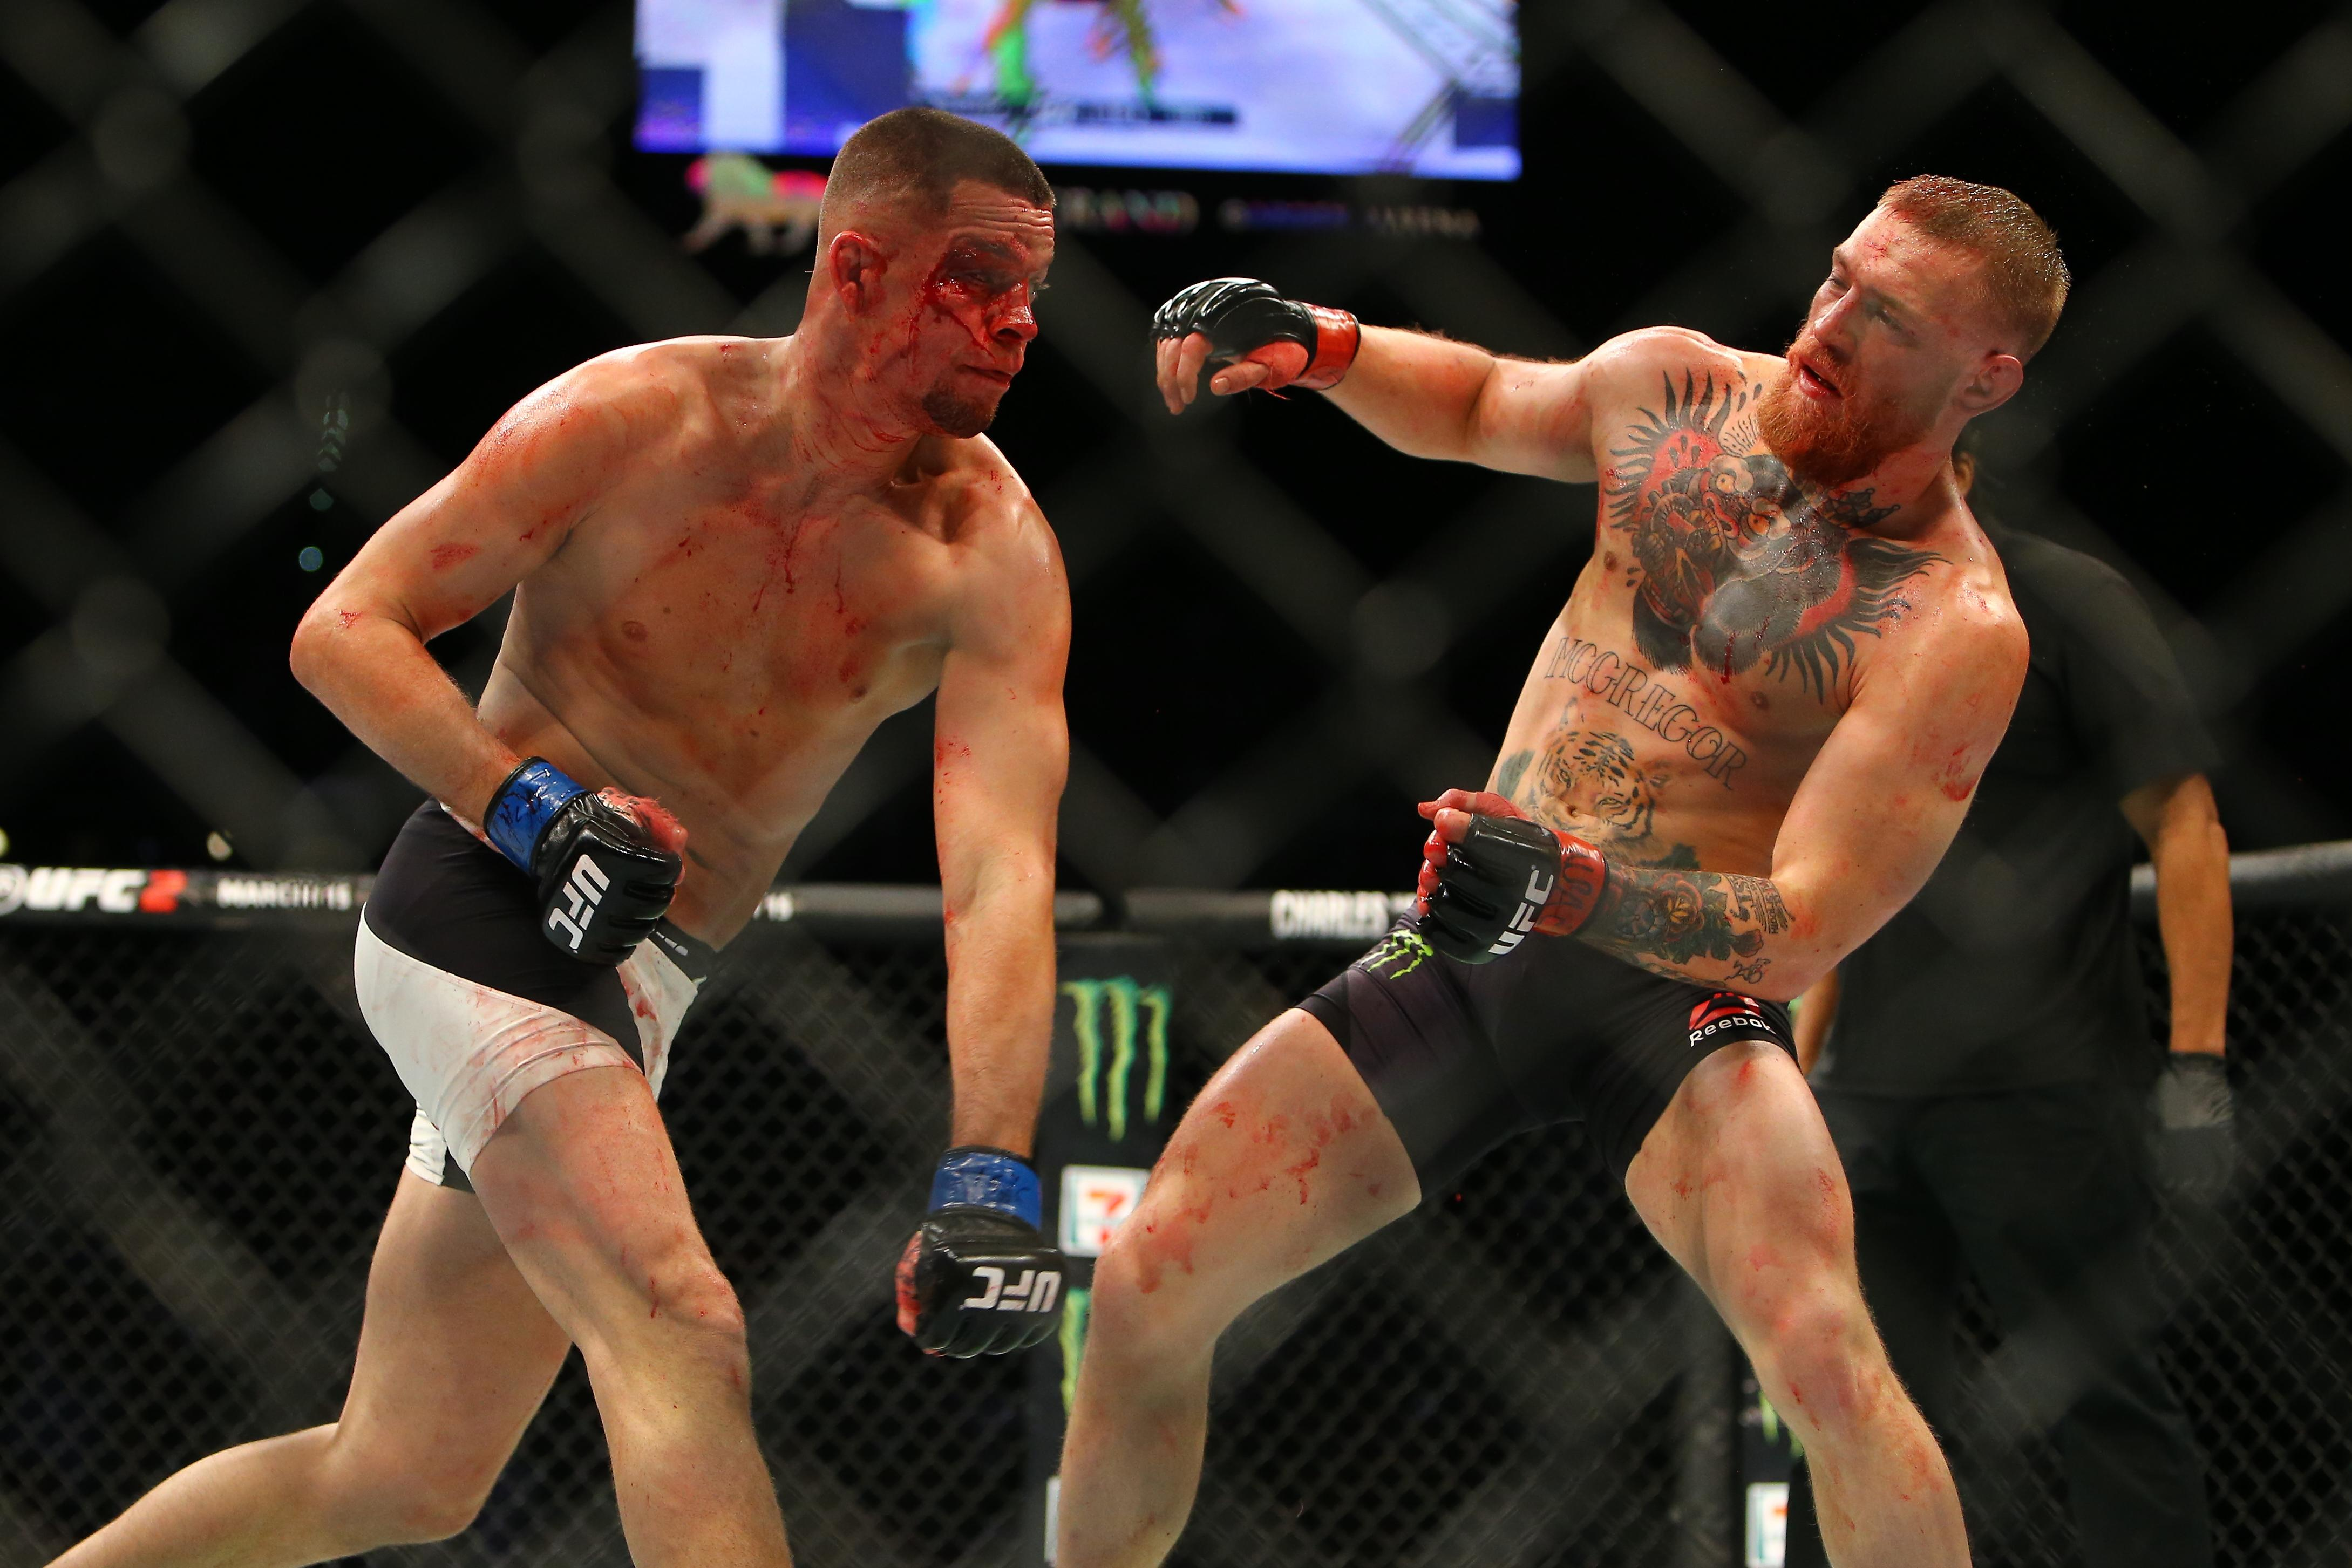 Diaz's brother, Nate, defeated McGregor at UFC 196, but would be defeated in the rematch five months later